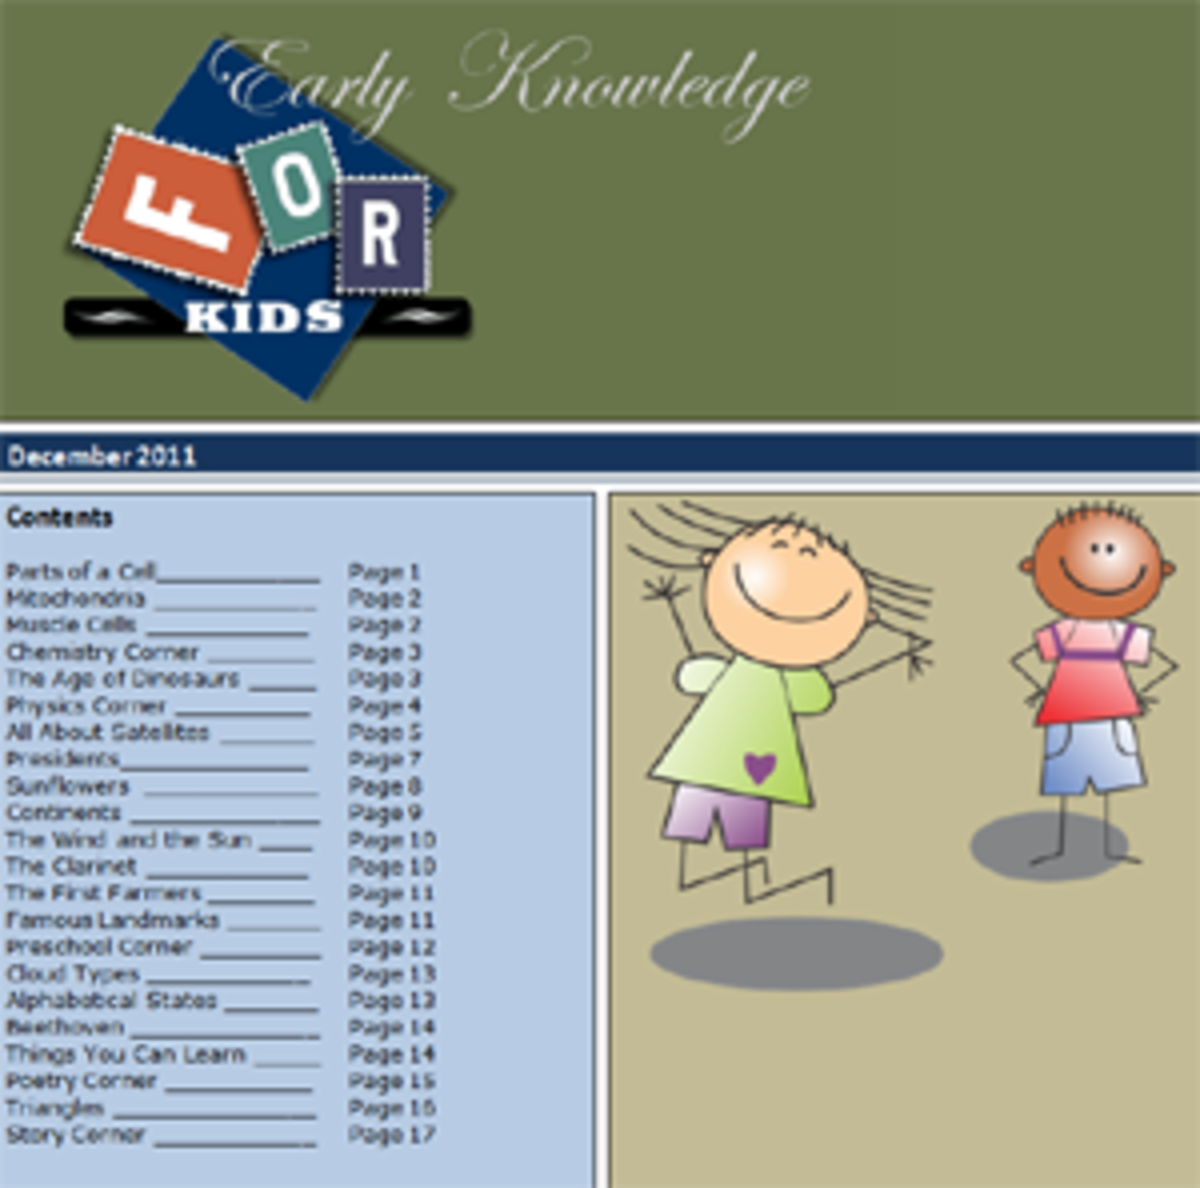 Early Knowledge for Kids is a free online general knowledge magazine that teaches science and social studies